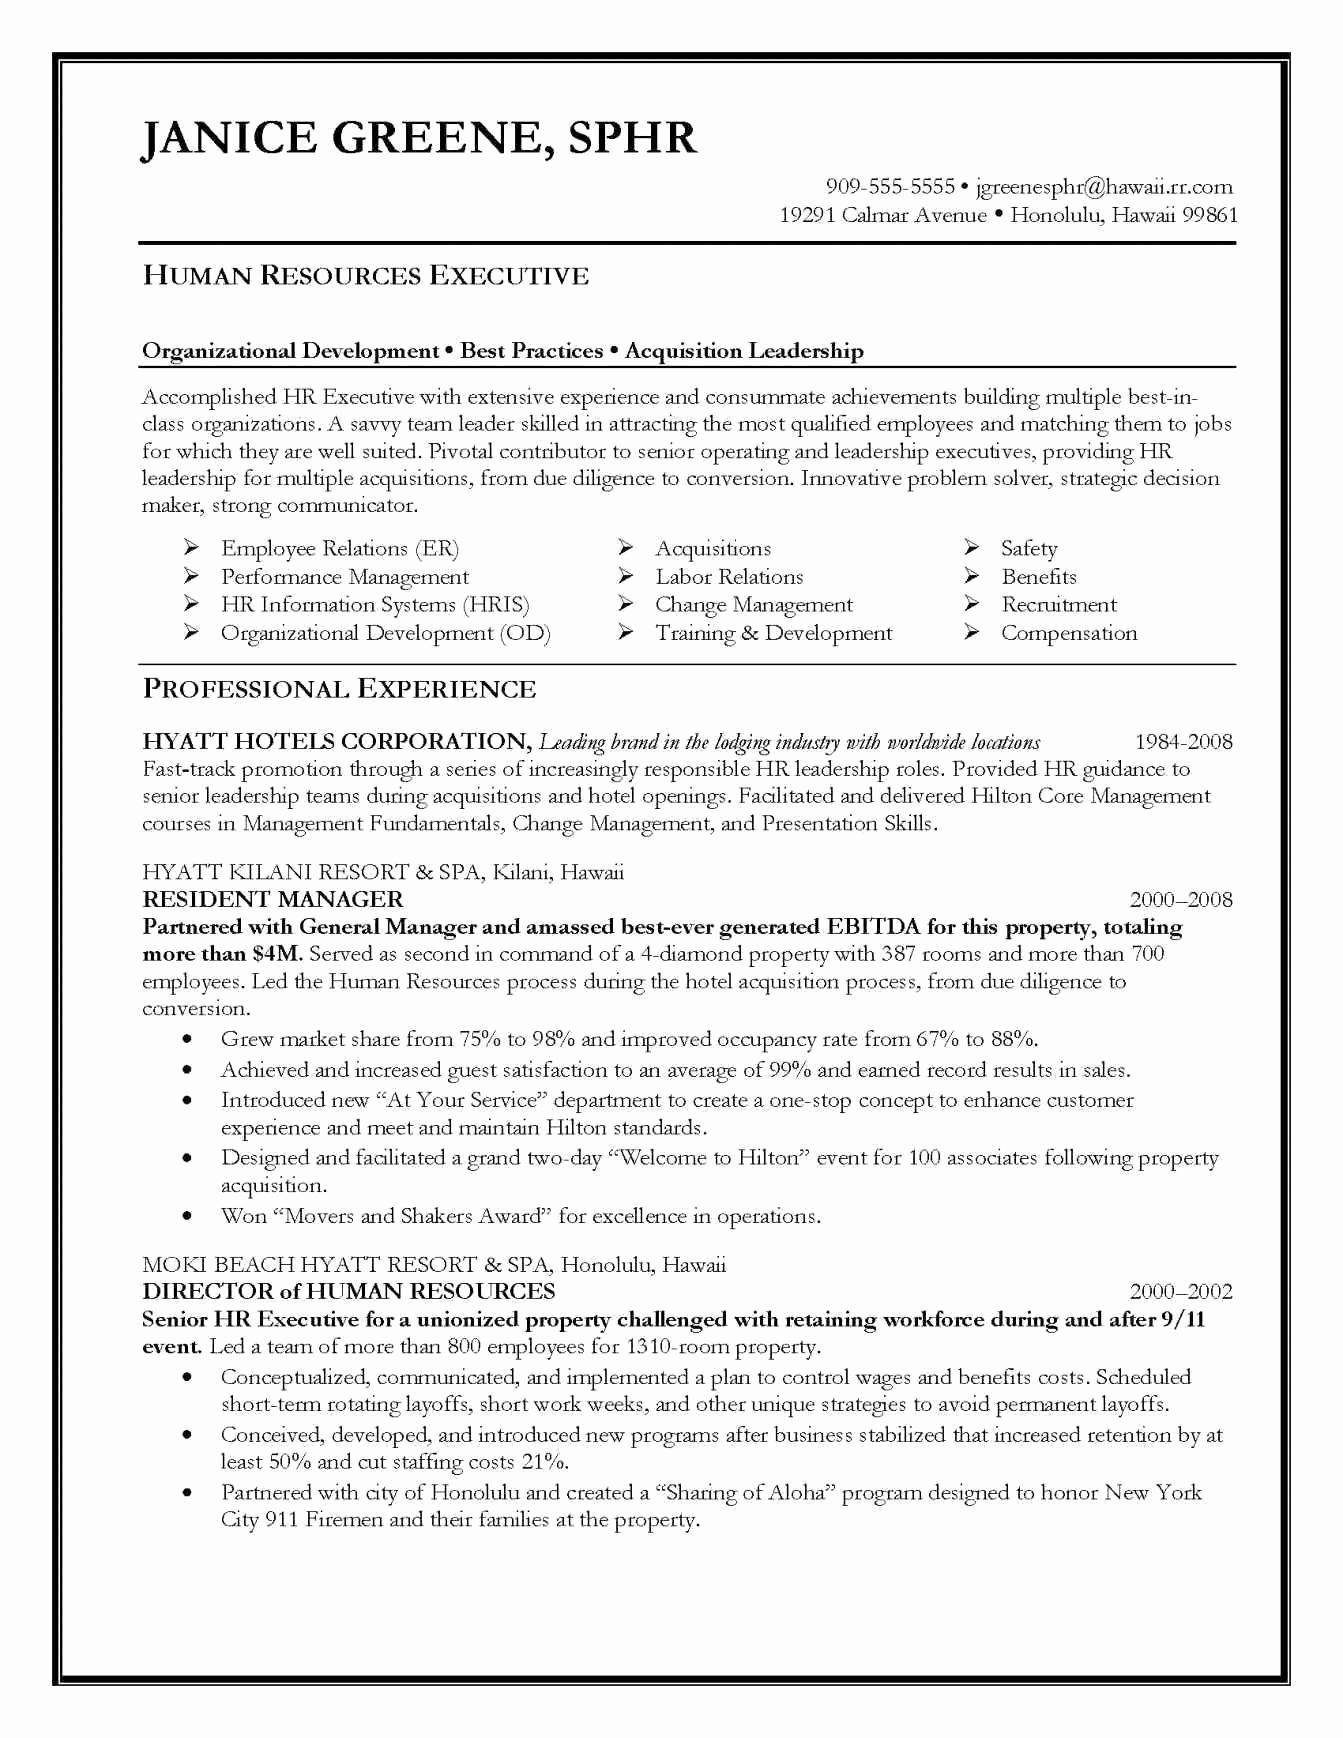 Service Industry Resume Example - Resume Samples for Food Service Awesome Front Desk Hotel Resume